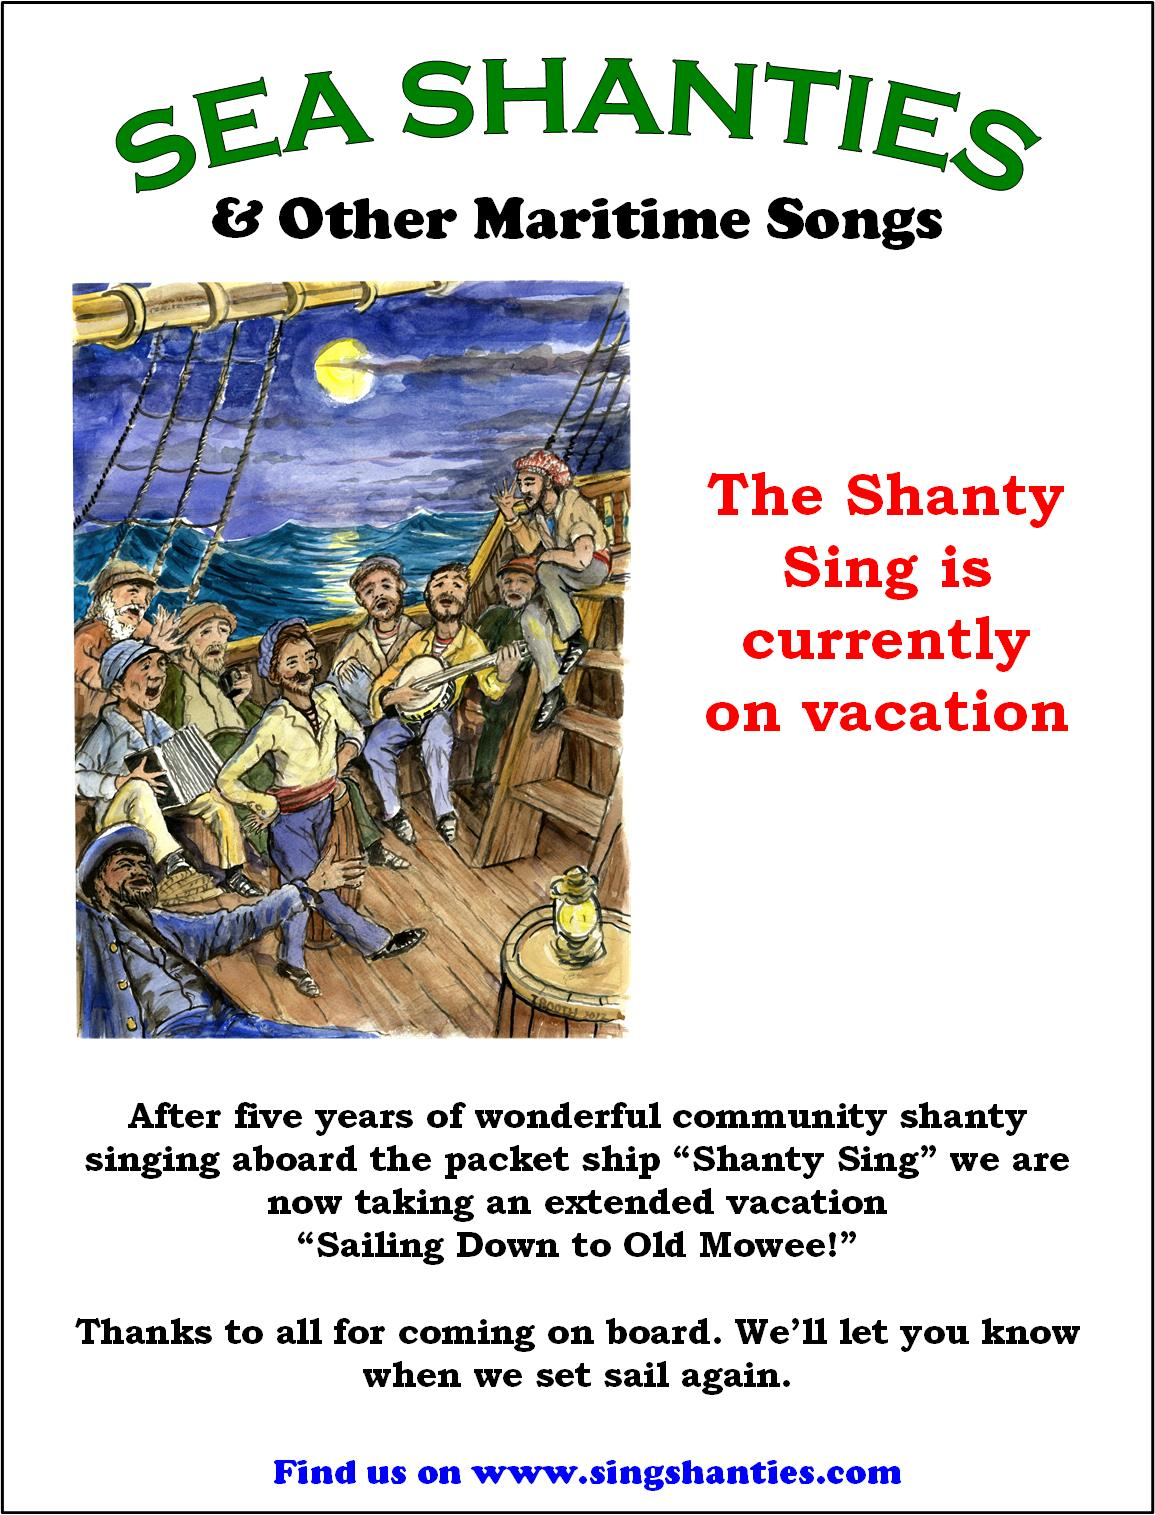 Sing Shanties: The Shanty Sing goes on vacation